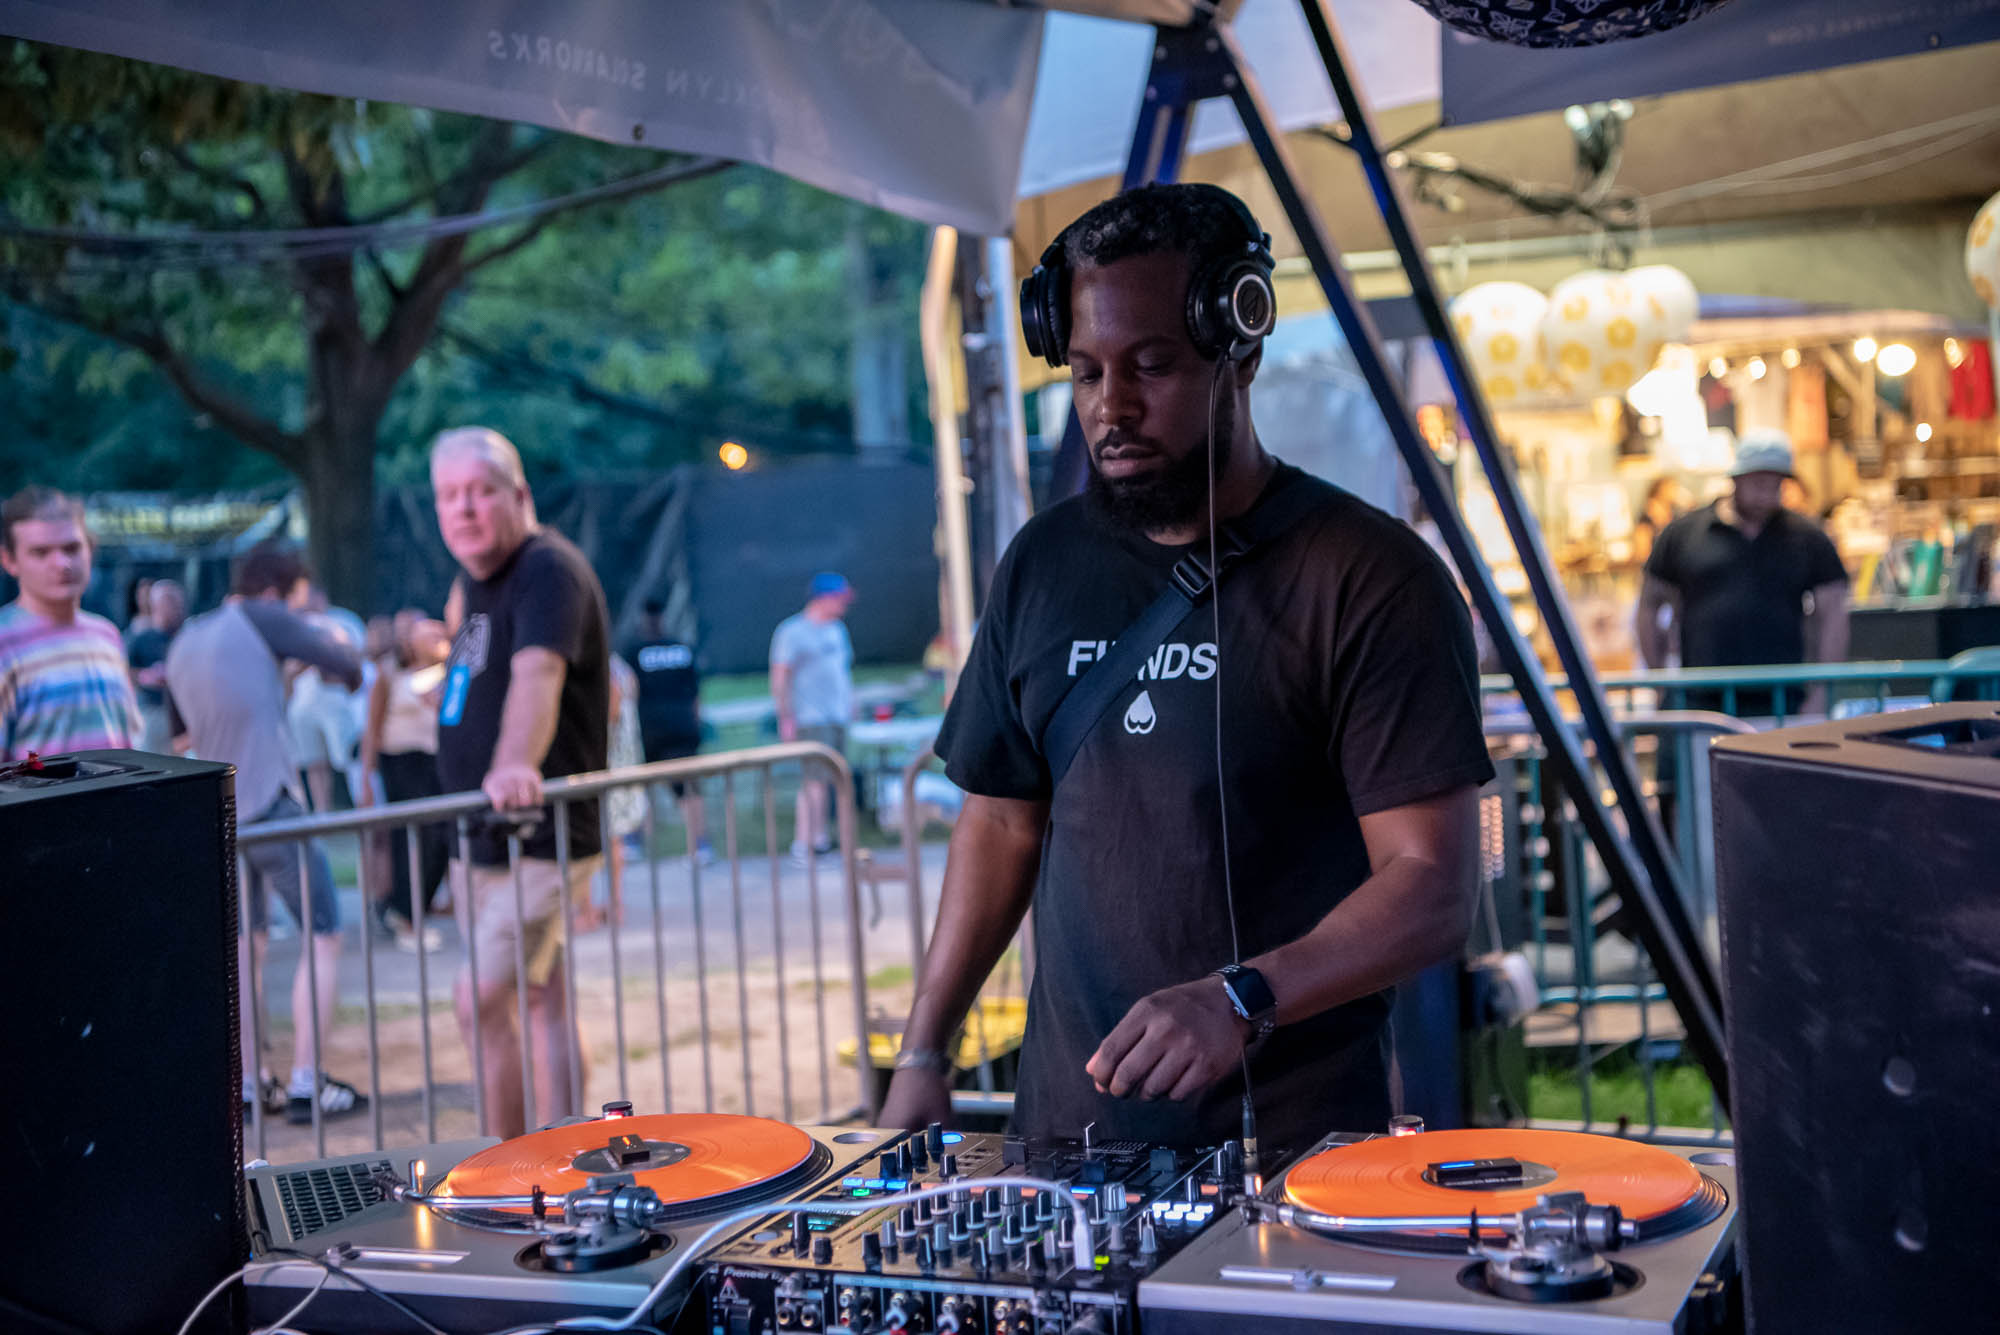 DJ MOMA spins from the crowd at BRIC Celebrate Brooklyn! Festival at Prospect Park in Brooklyn, NY on Friday, July 26, 2019.